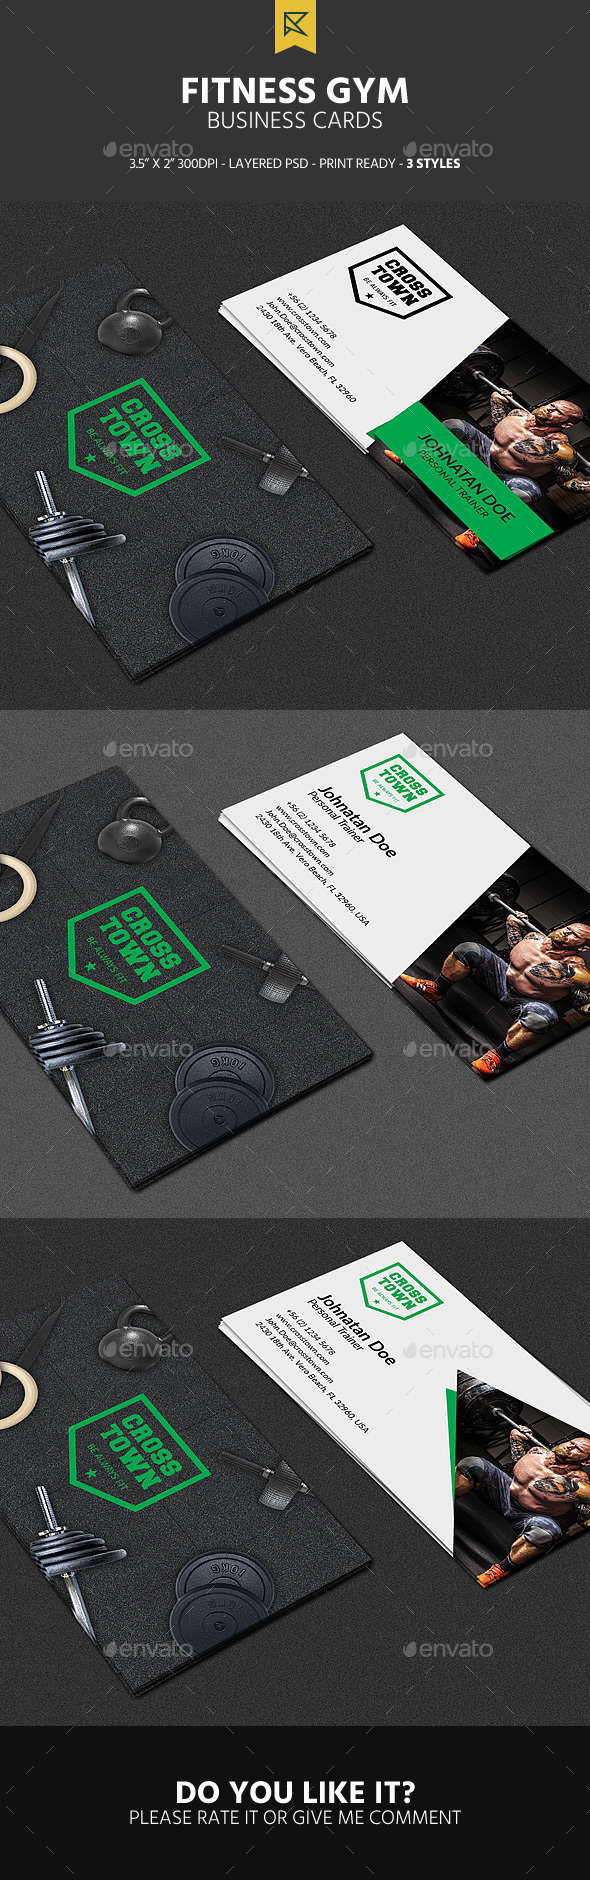 3 Fitness Gym Business Cards - Business Cards Print Templates